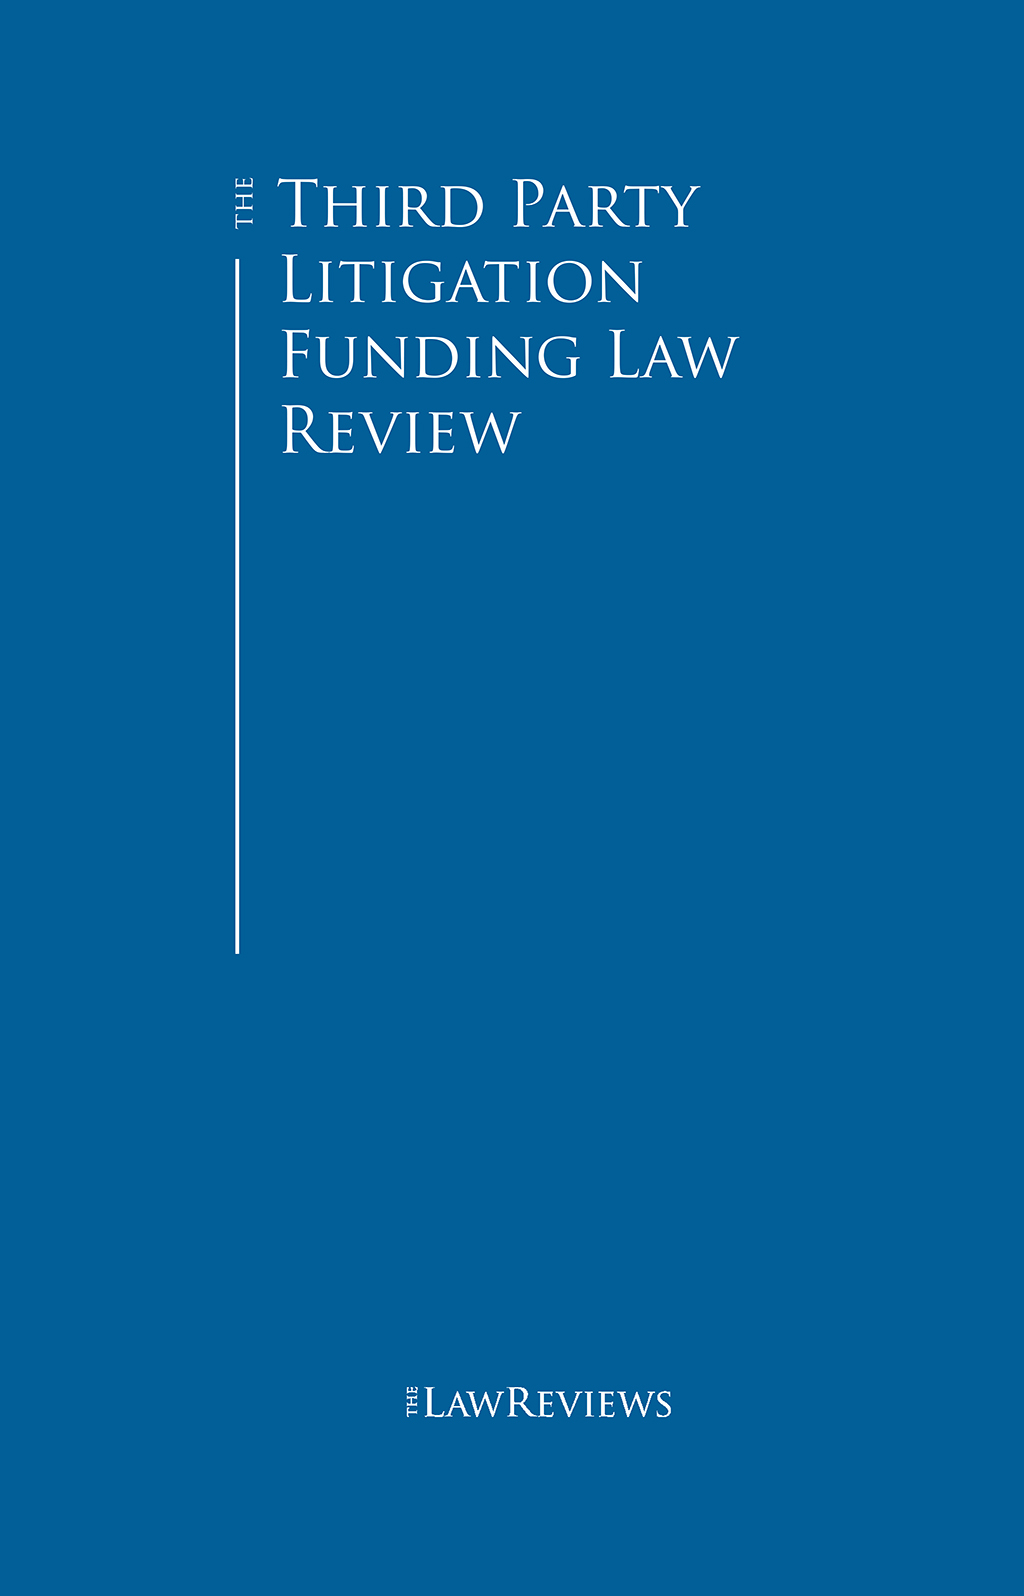 The Third Party Litigation Funding Law Review